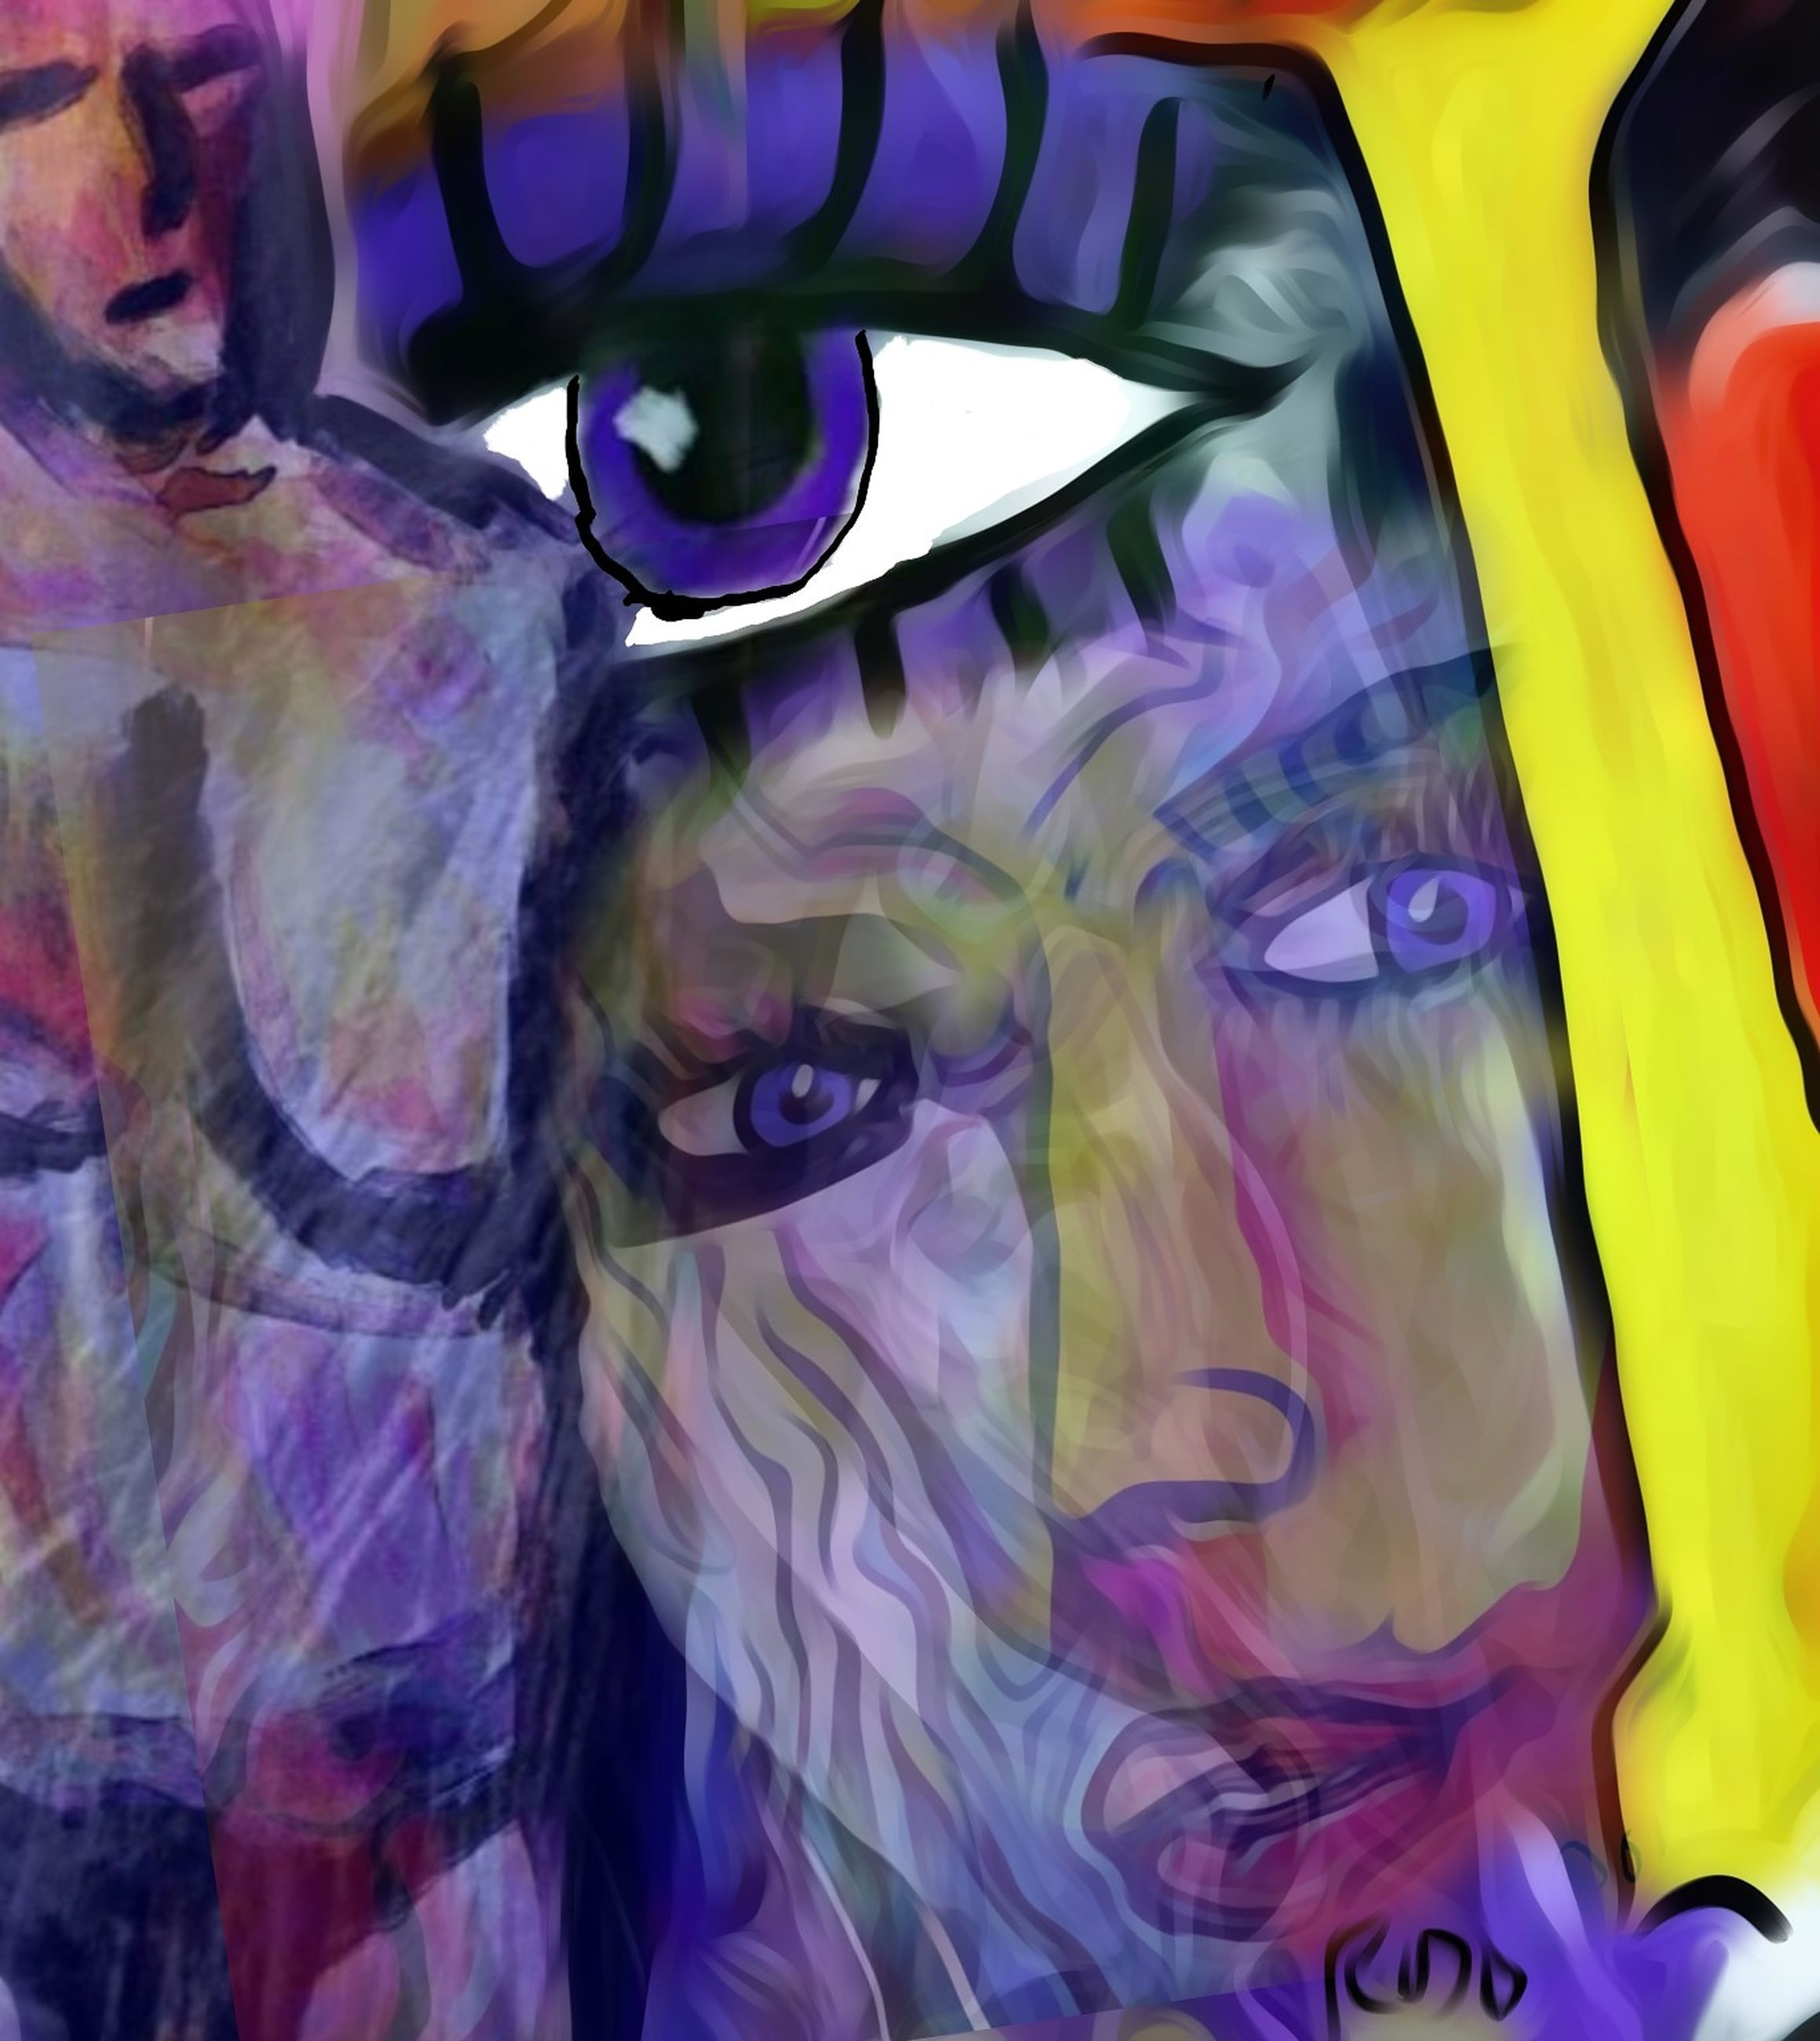 multi colored, creativity, full frame, paint, abstract, backgrounds, painting, art, no people, pattern, close-up, drawing, sketch